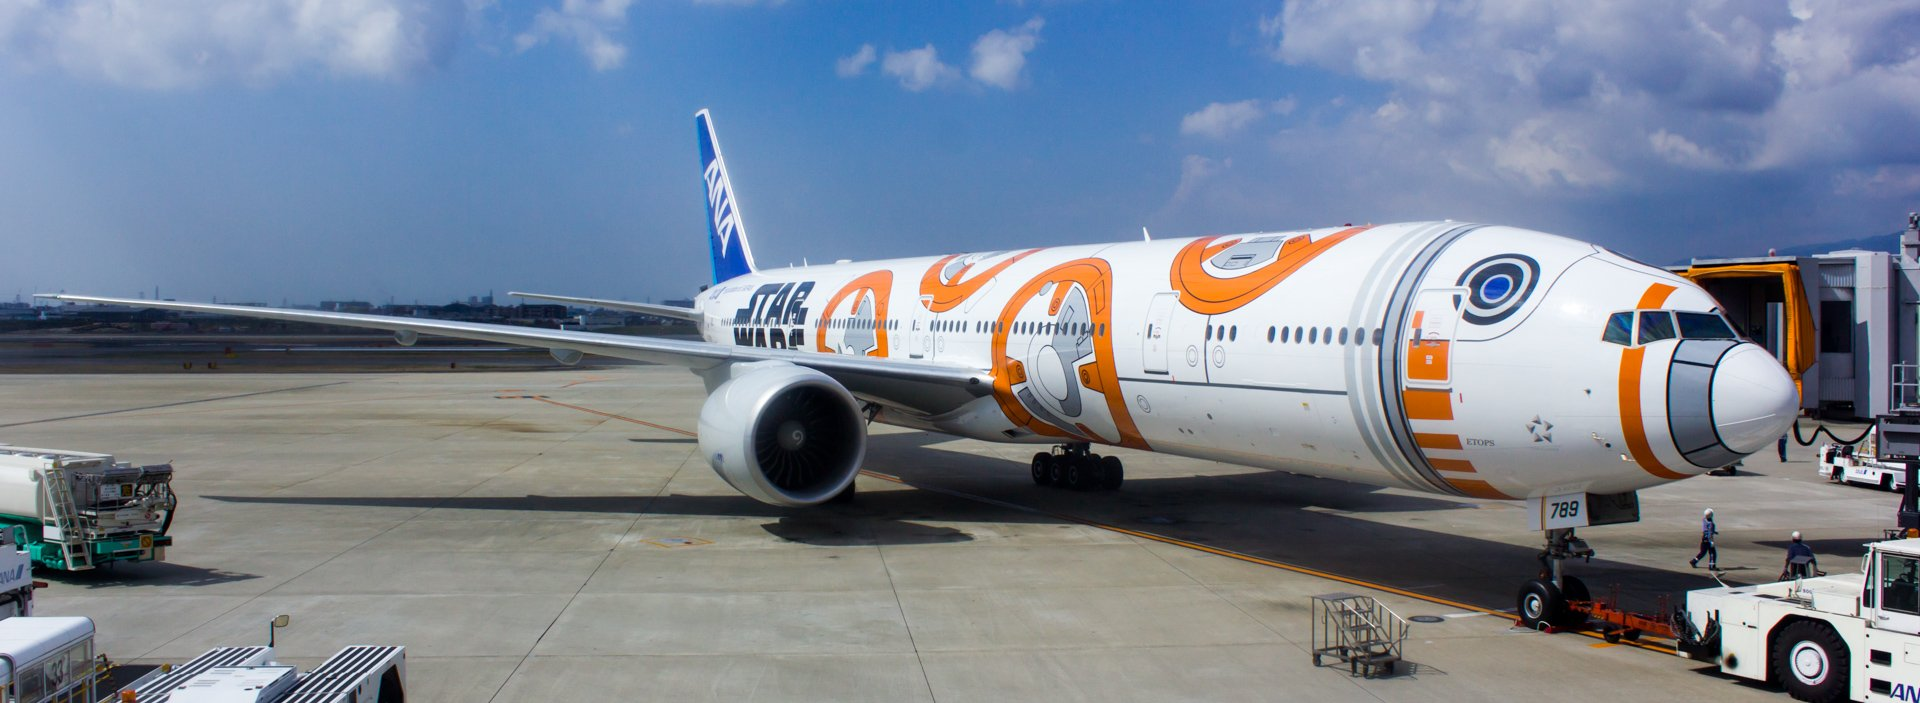 Star Wars BB-8™ ANA Jet Pt. 2: The Inaugural